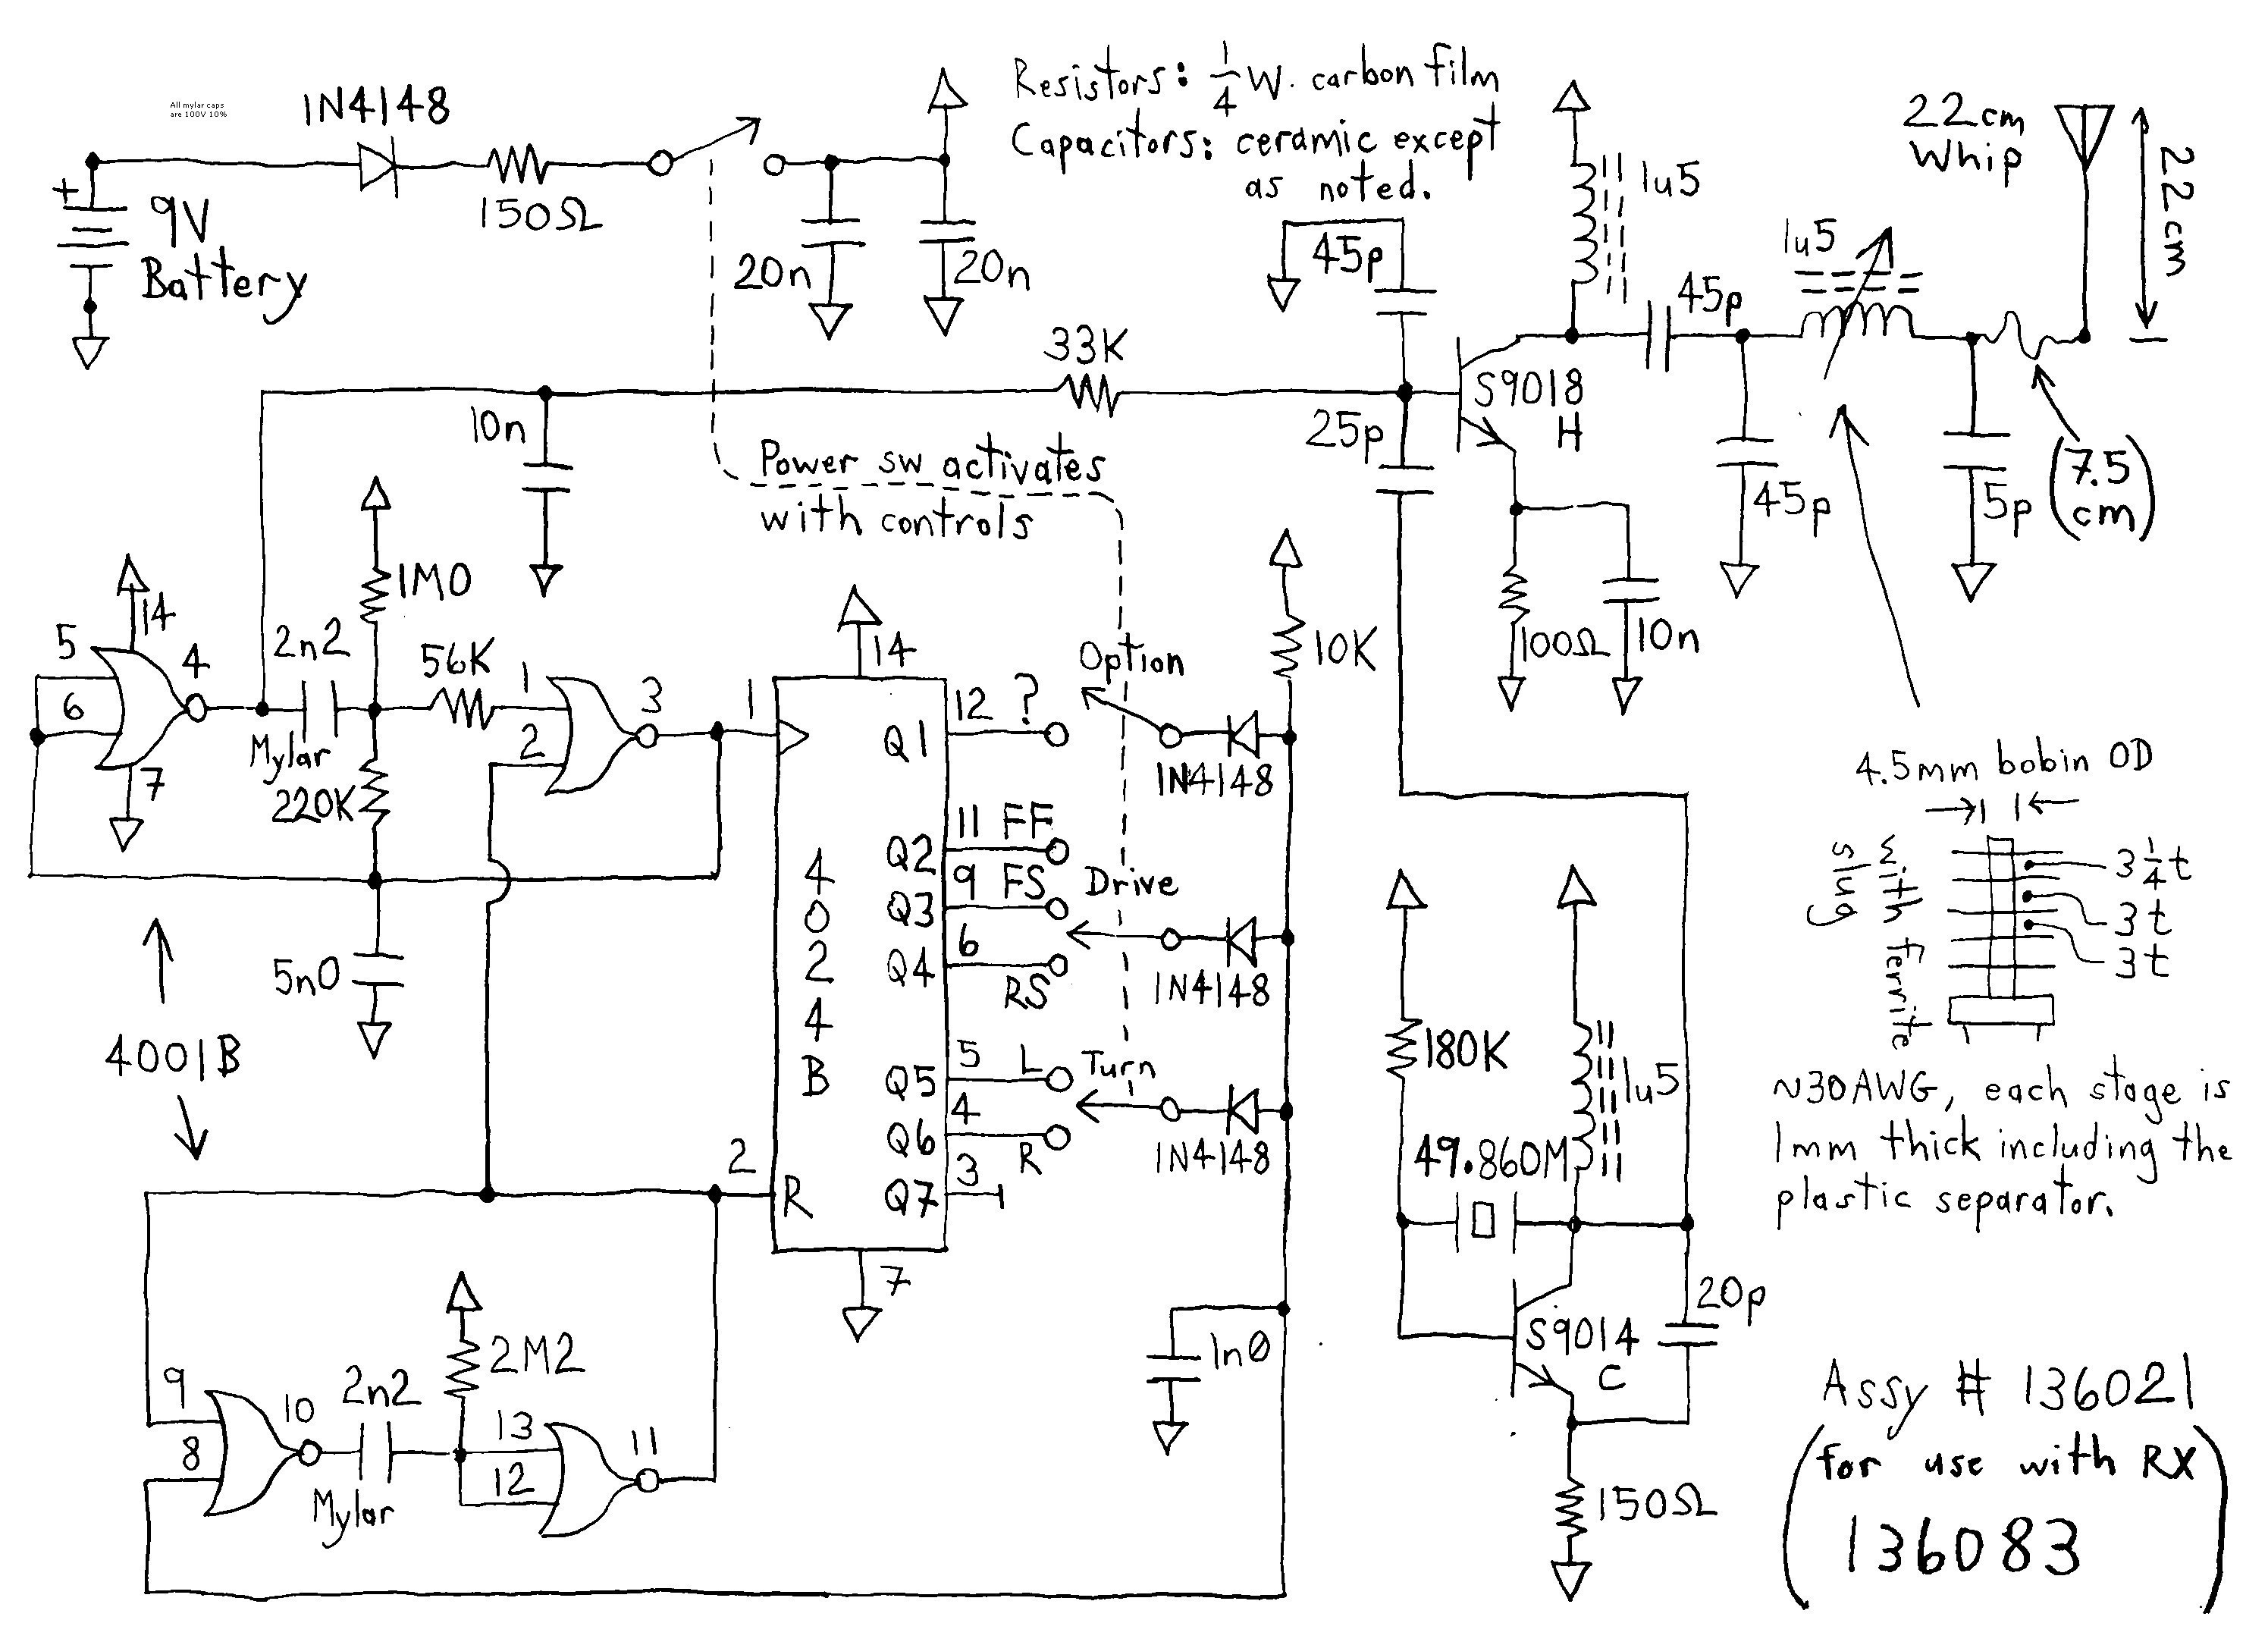 Kawasaki Bayou 220 Engine Diagram Wiring Diagram Kawasaki Bayou 220 New Electrical Wiring Circuit Of Kawasaki Bayou 220 Engine Diagram Wiring Diagram Archives Page 69 Of 71 Balnearios